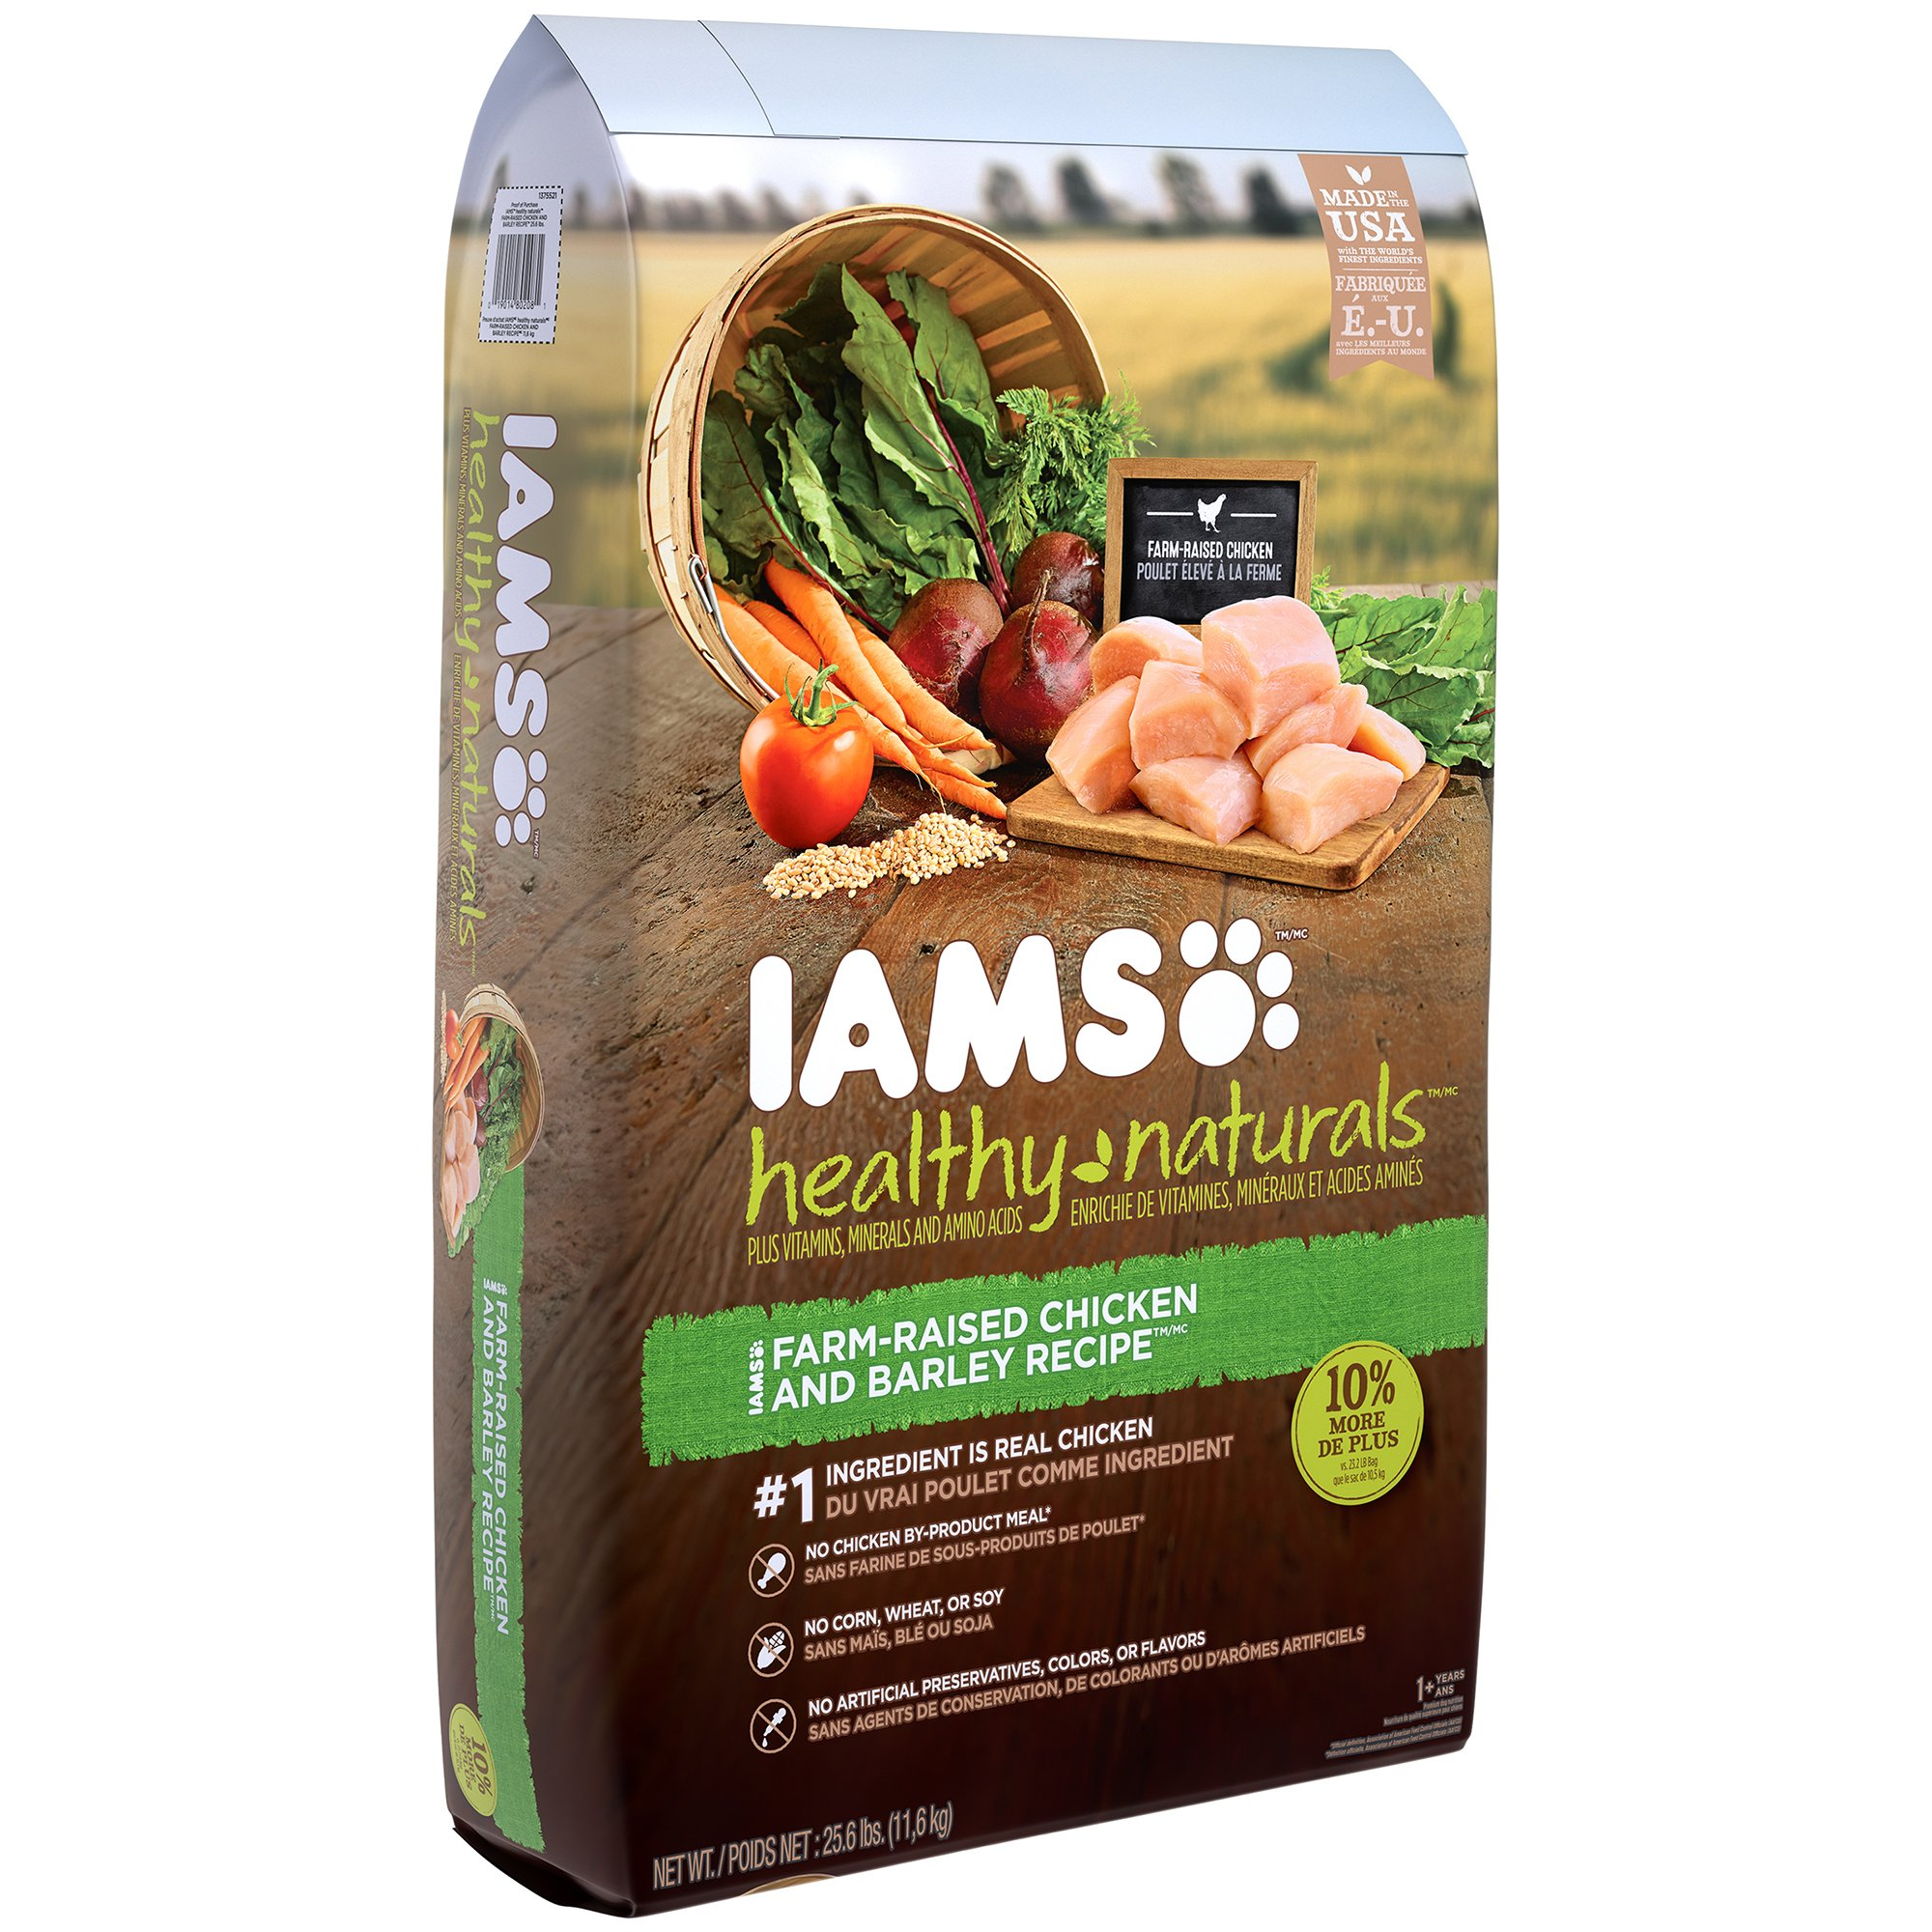 Iams healthy naturals adult chicken and barley recipe dry dog food iams healthy naturals adult chicken and barley recipe dry dog food 256 pounds forumfinder Images